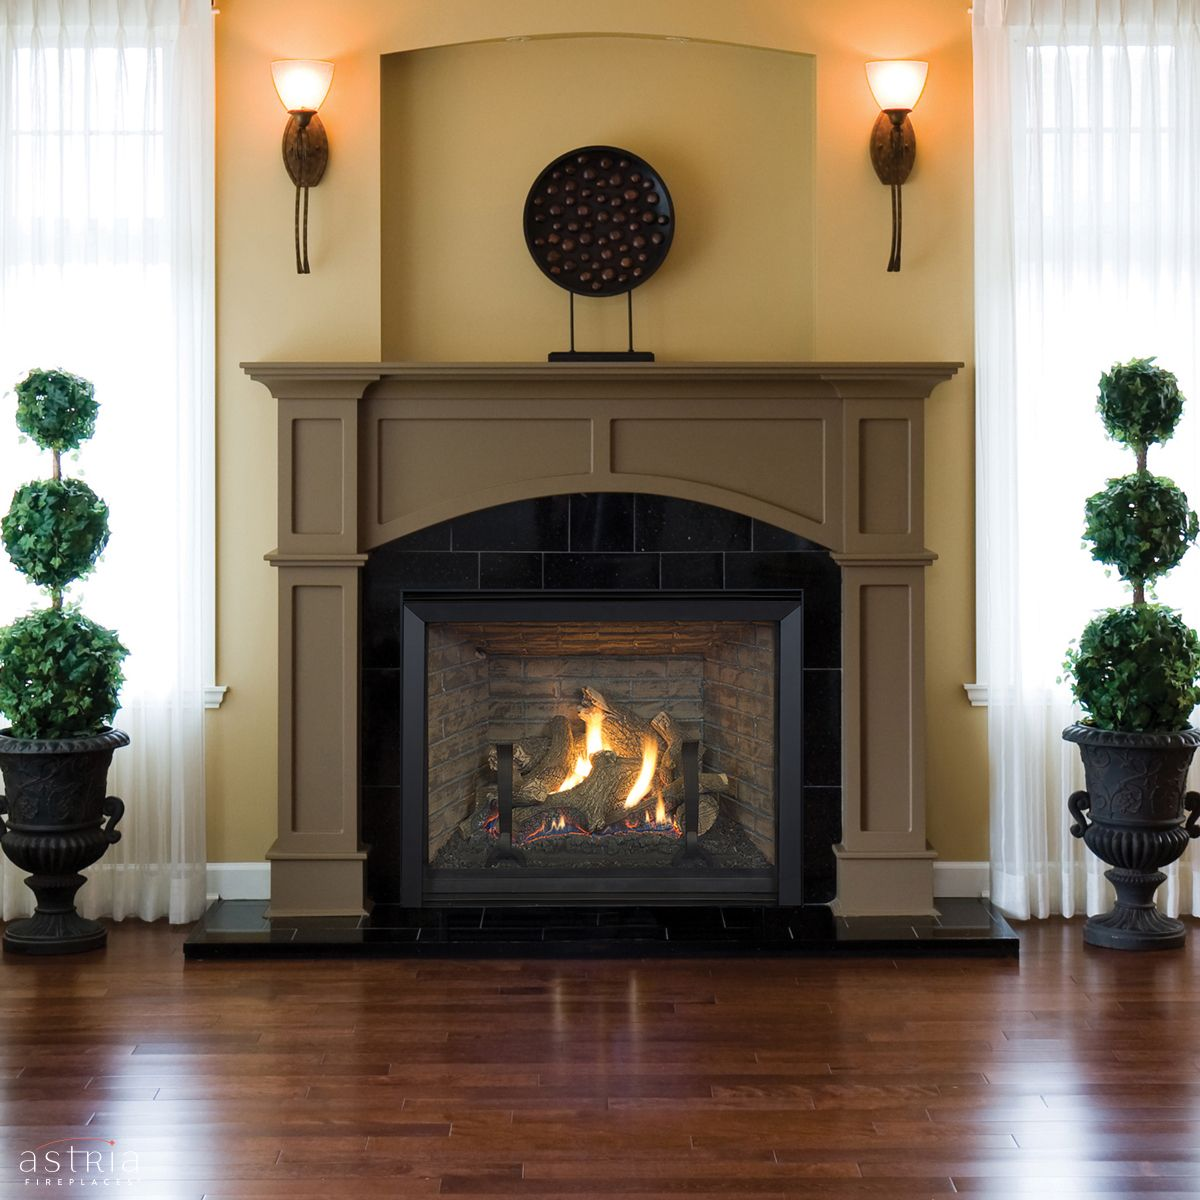 envy traditional gas fireplace by astria a stunning clean face